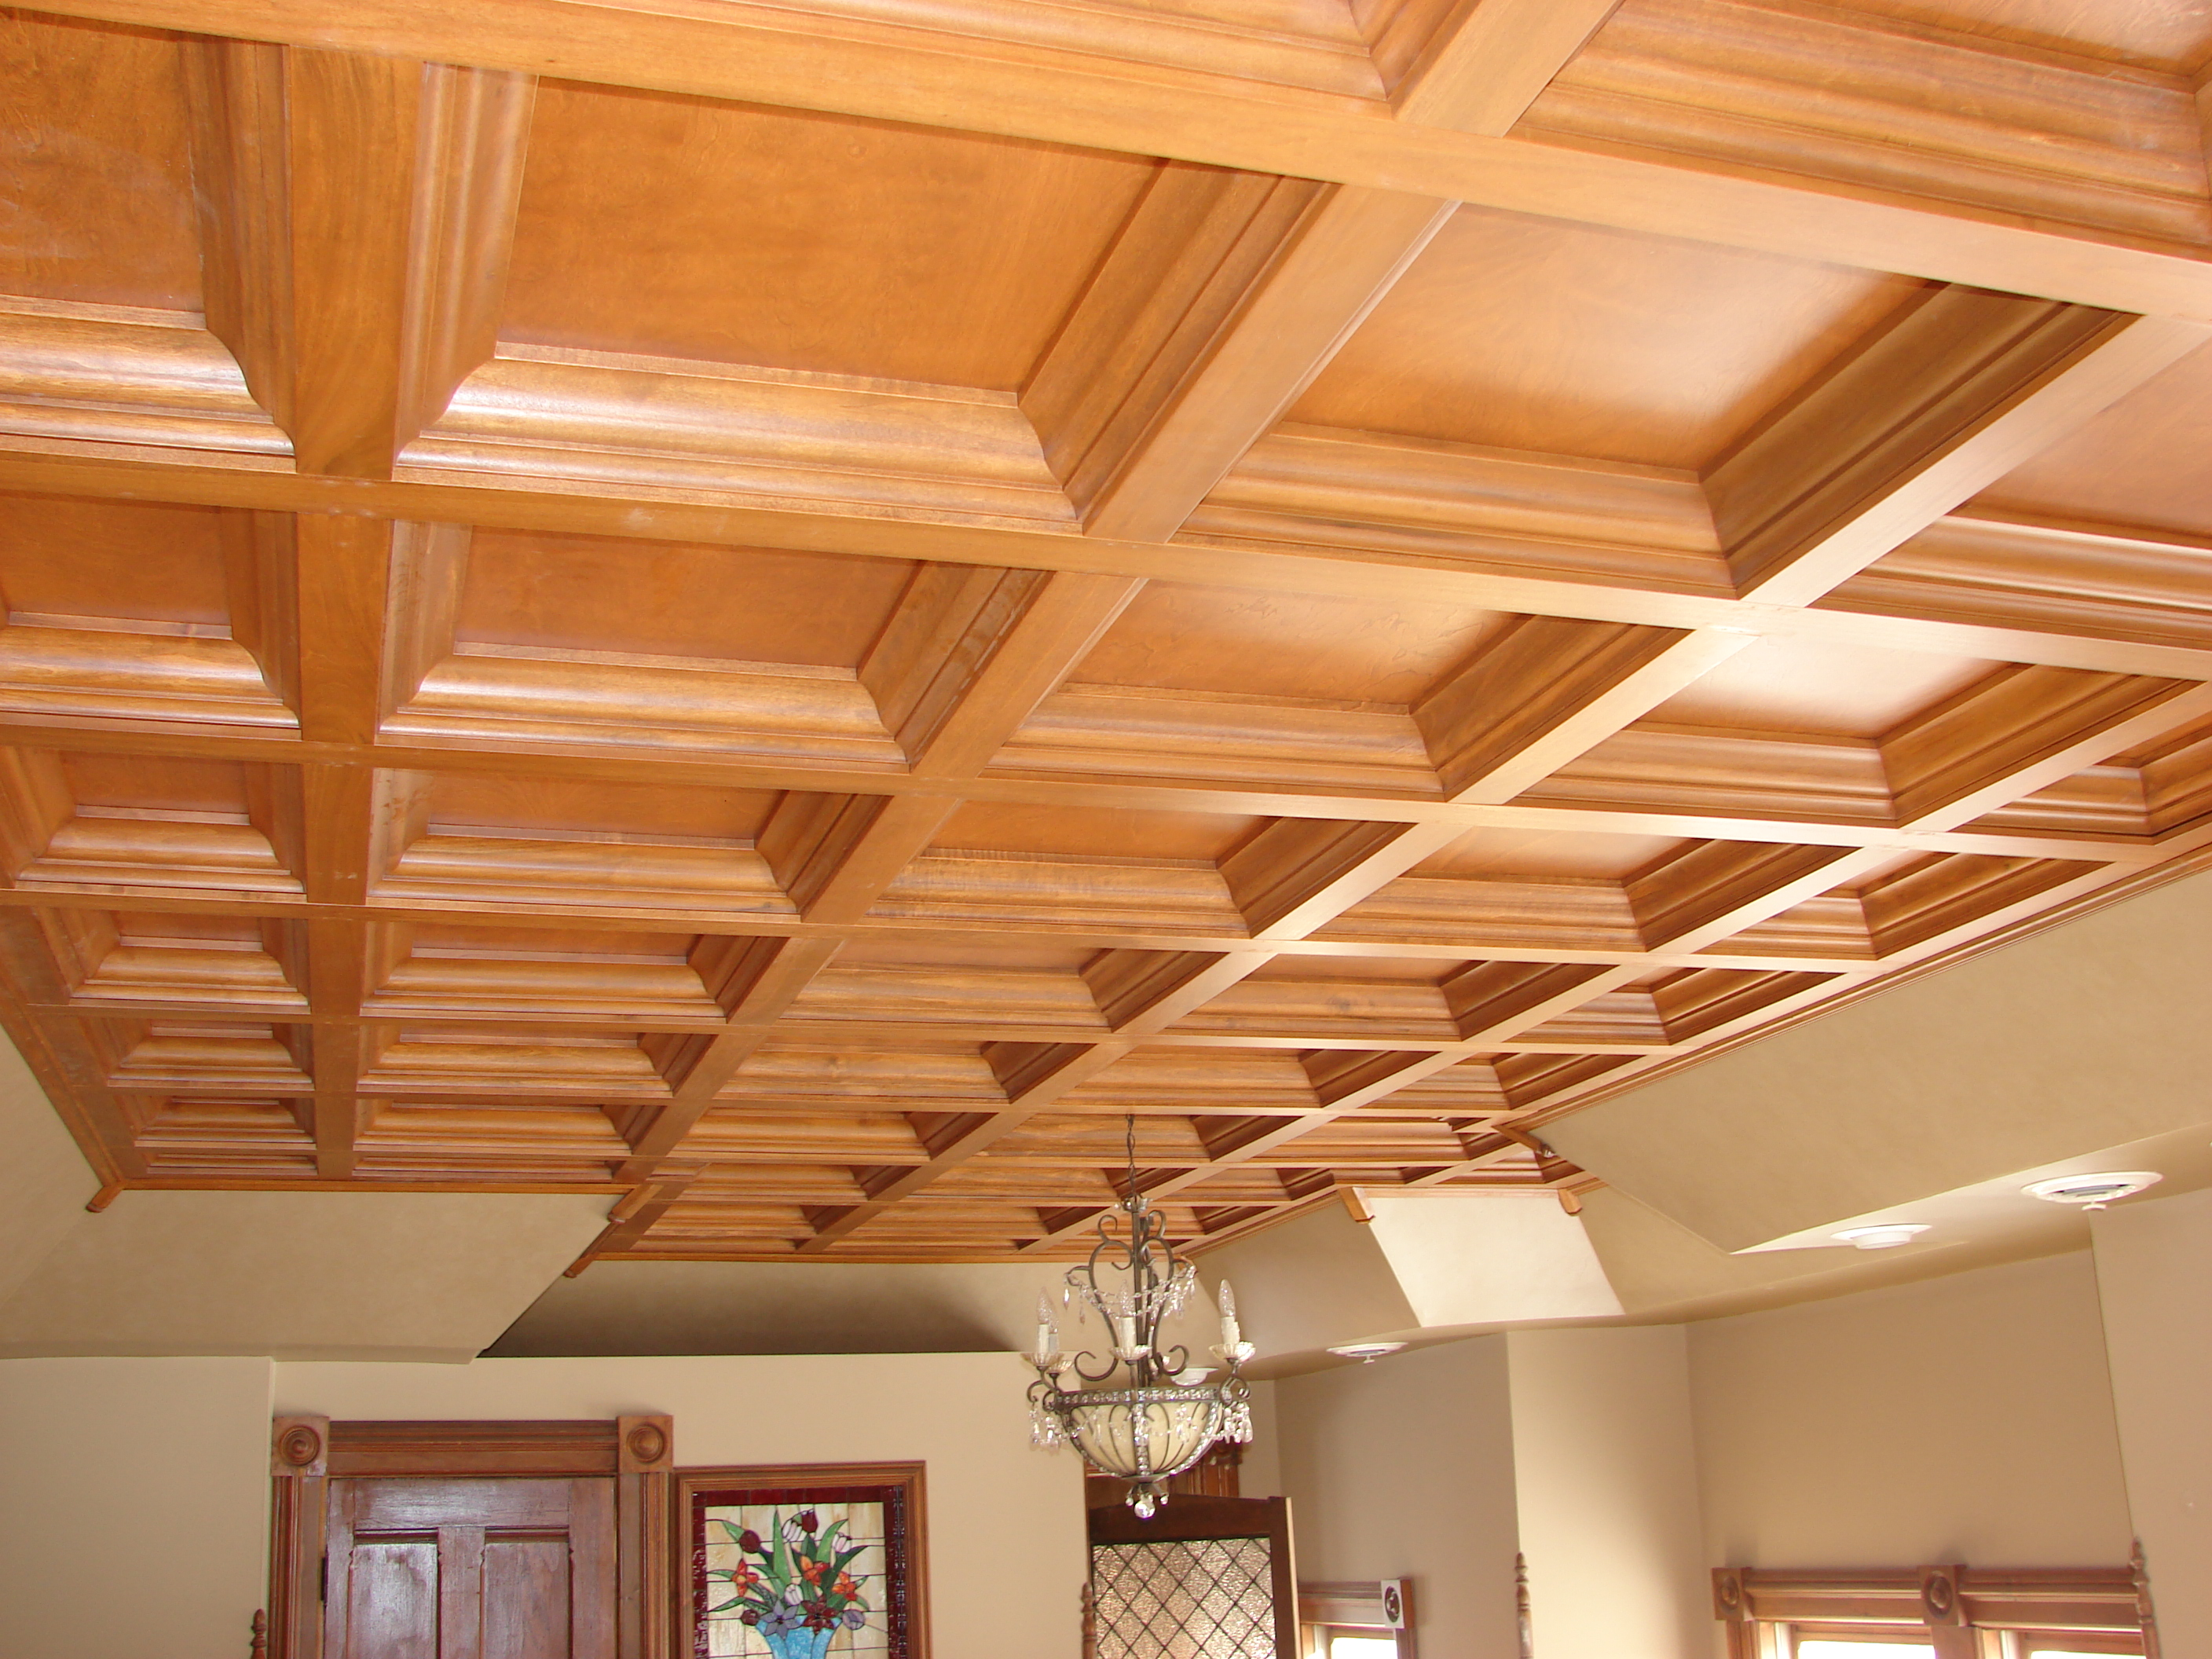 WoodGrid® Coffered Ceilings by Midwestern Wood Products Co. wood coffered ceilings